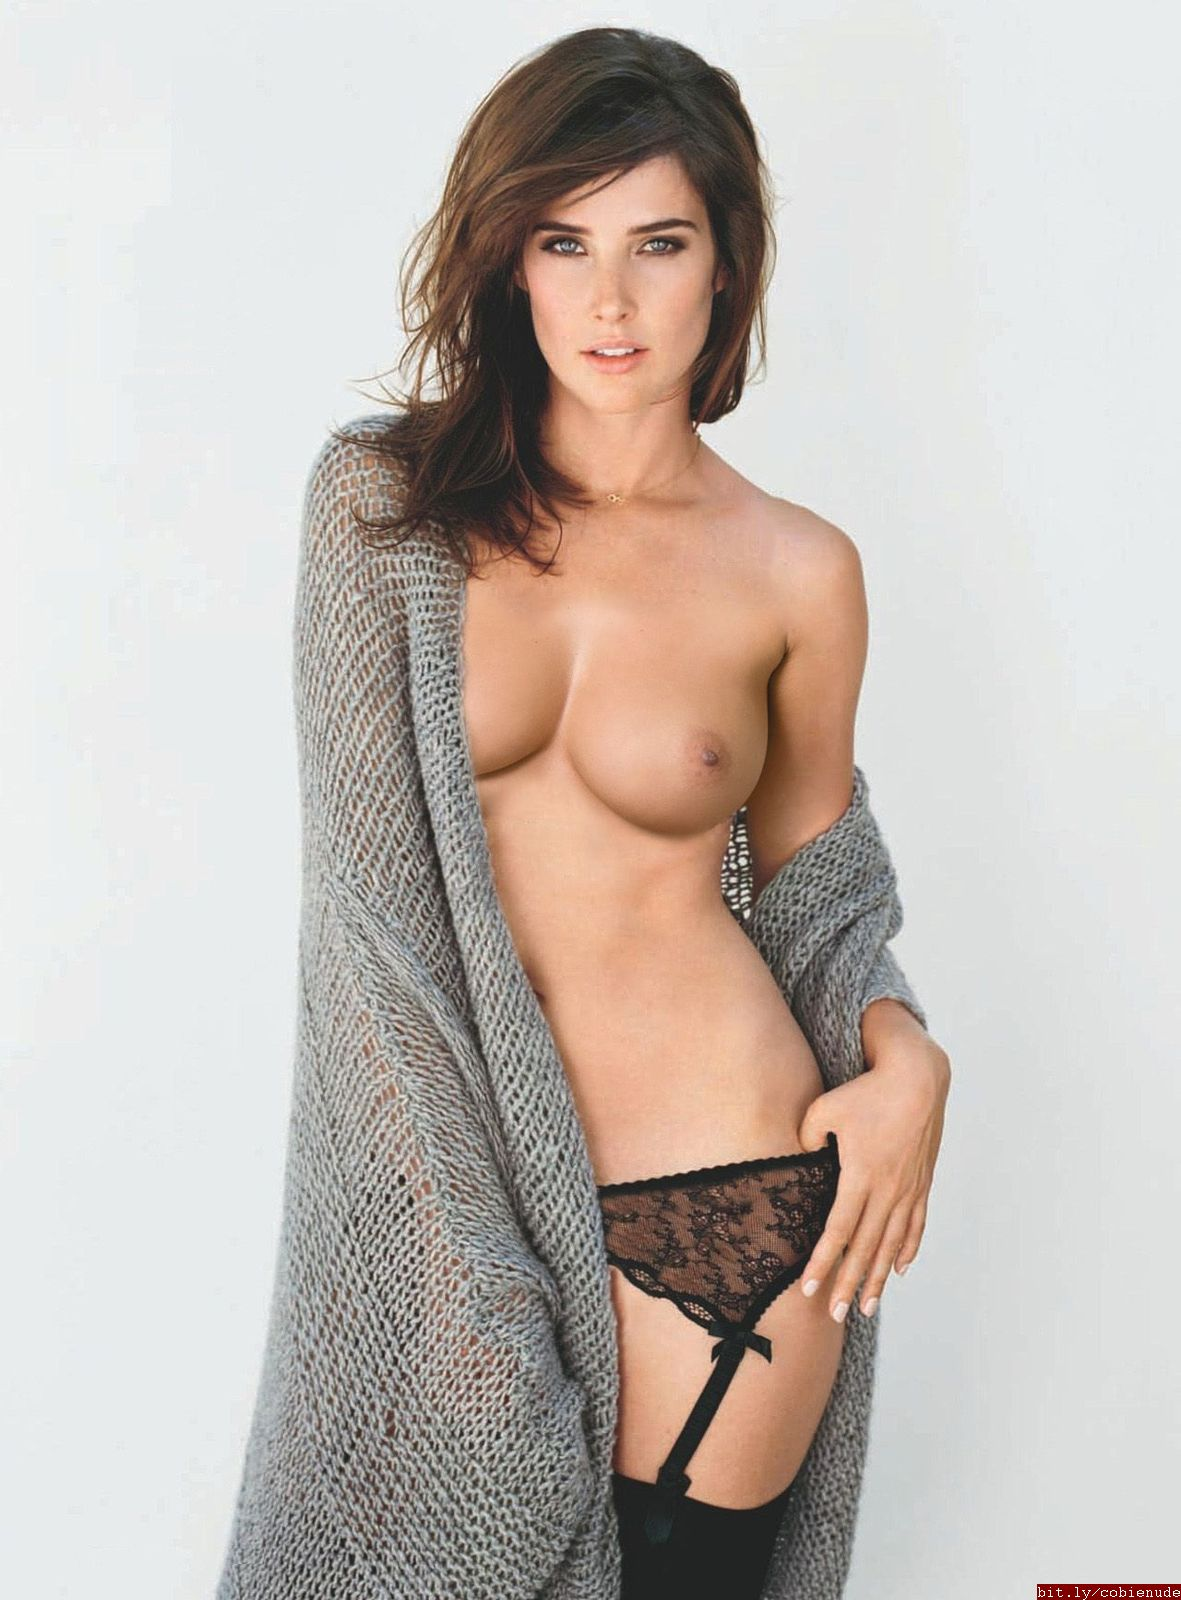 Opinion Cobie smulders nude vagina this